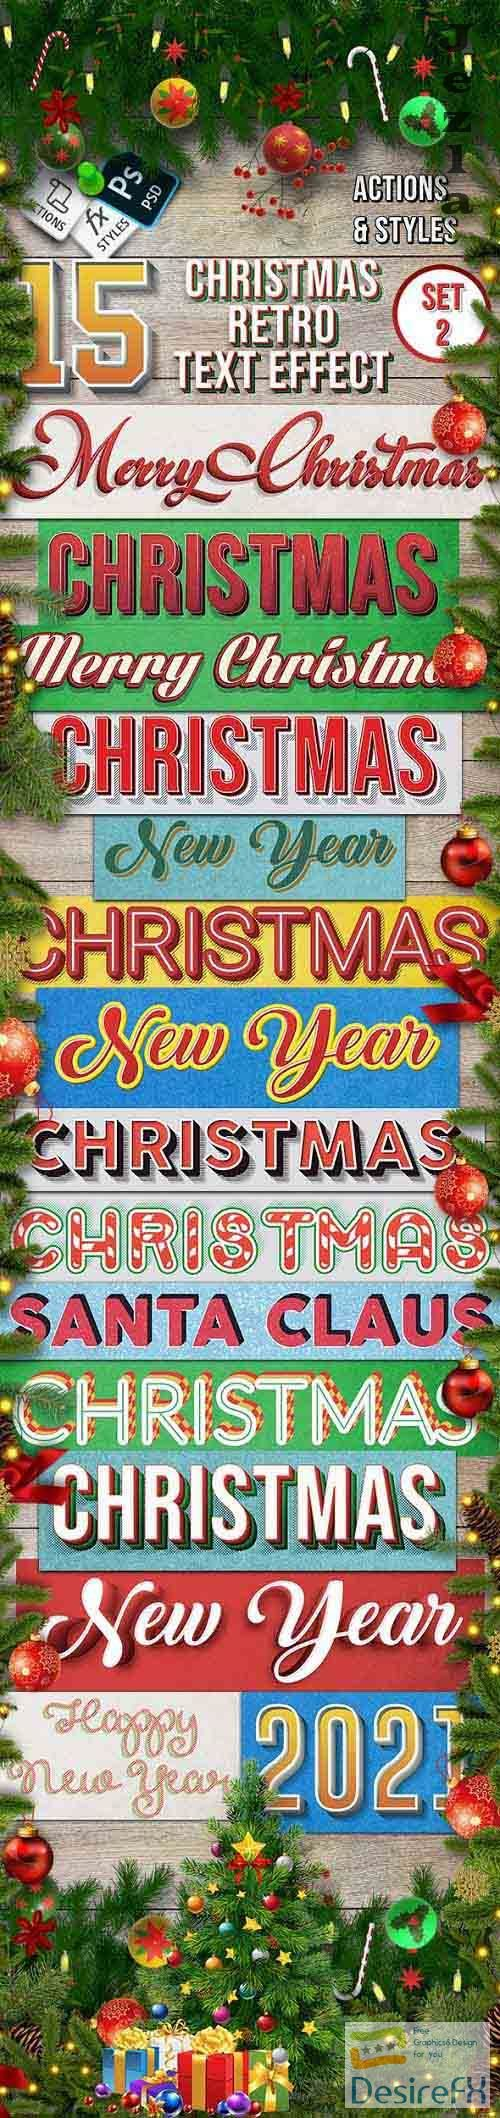 GraphicRiver - Christmas Retro Text Effect Set 2 - 15 Different Styles 29417802